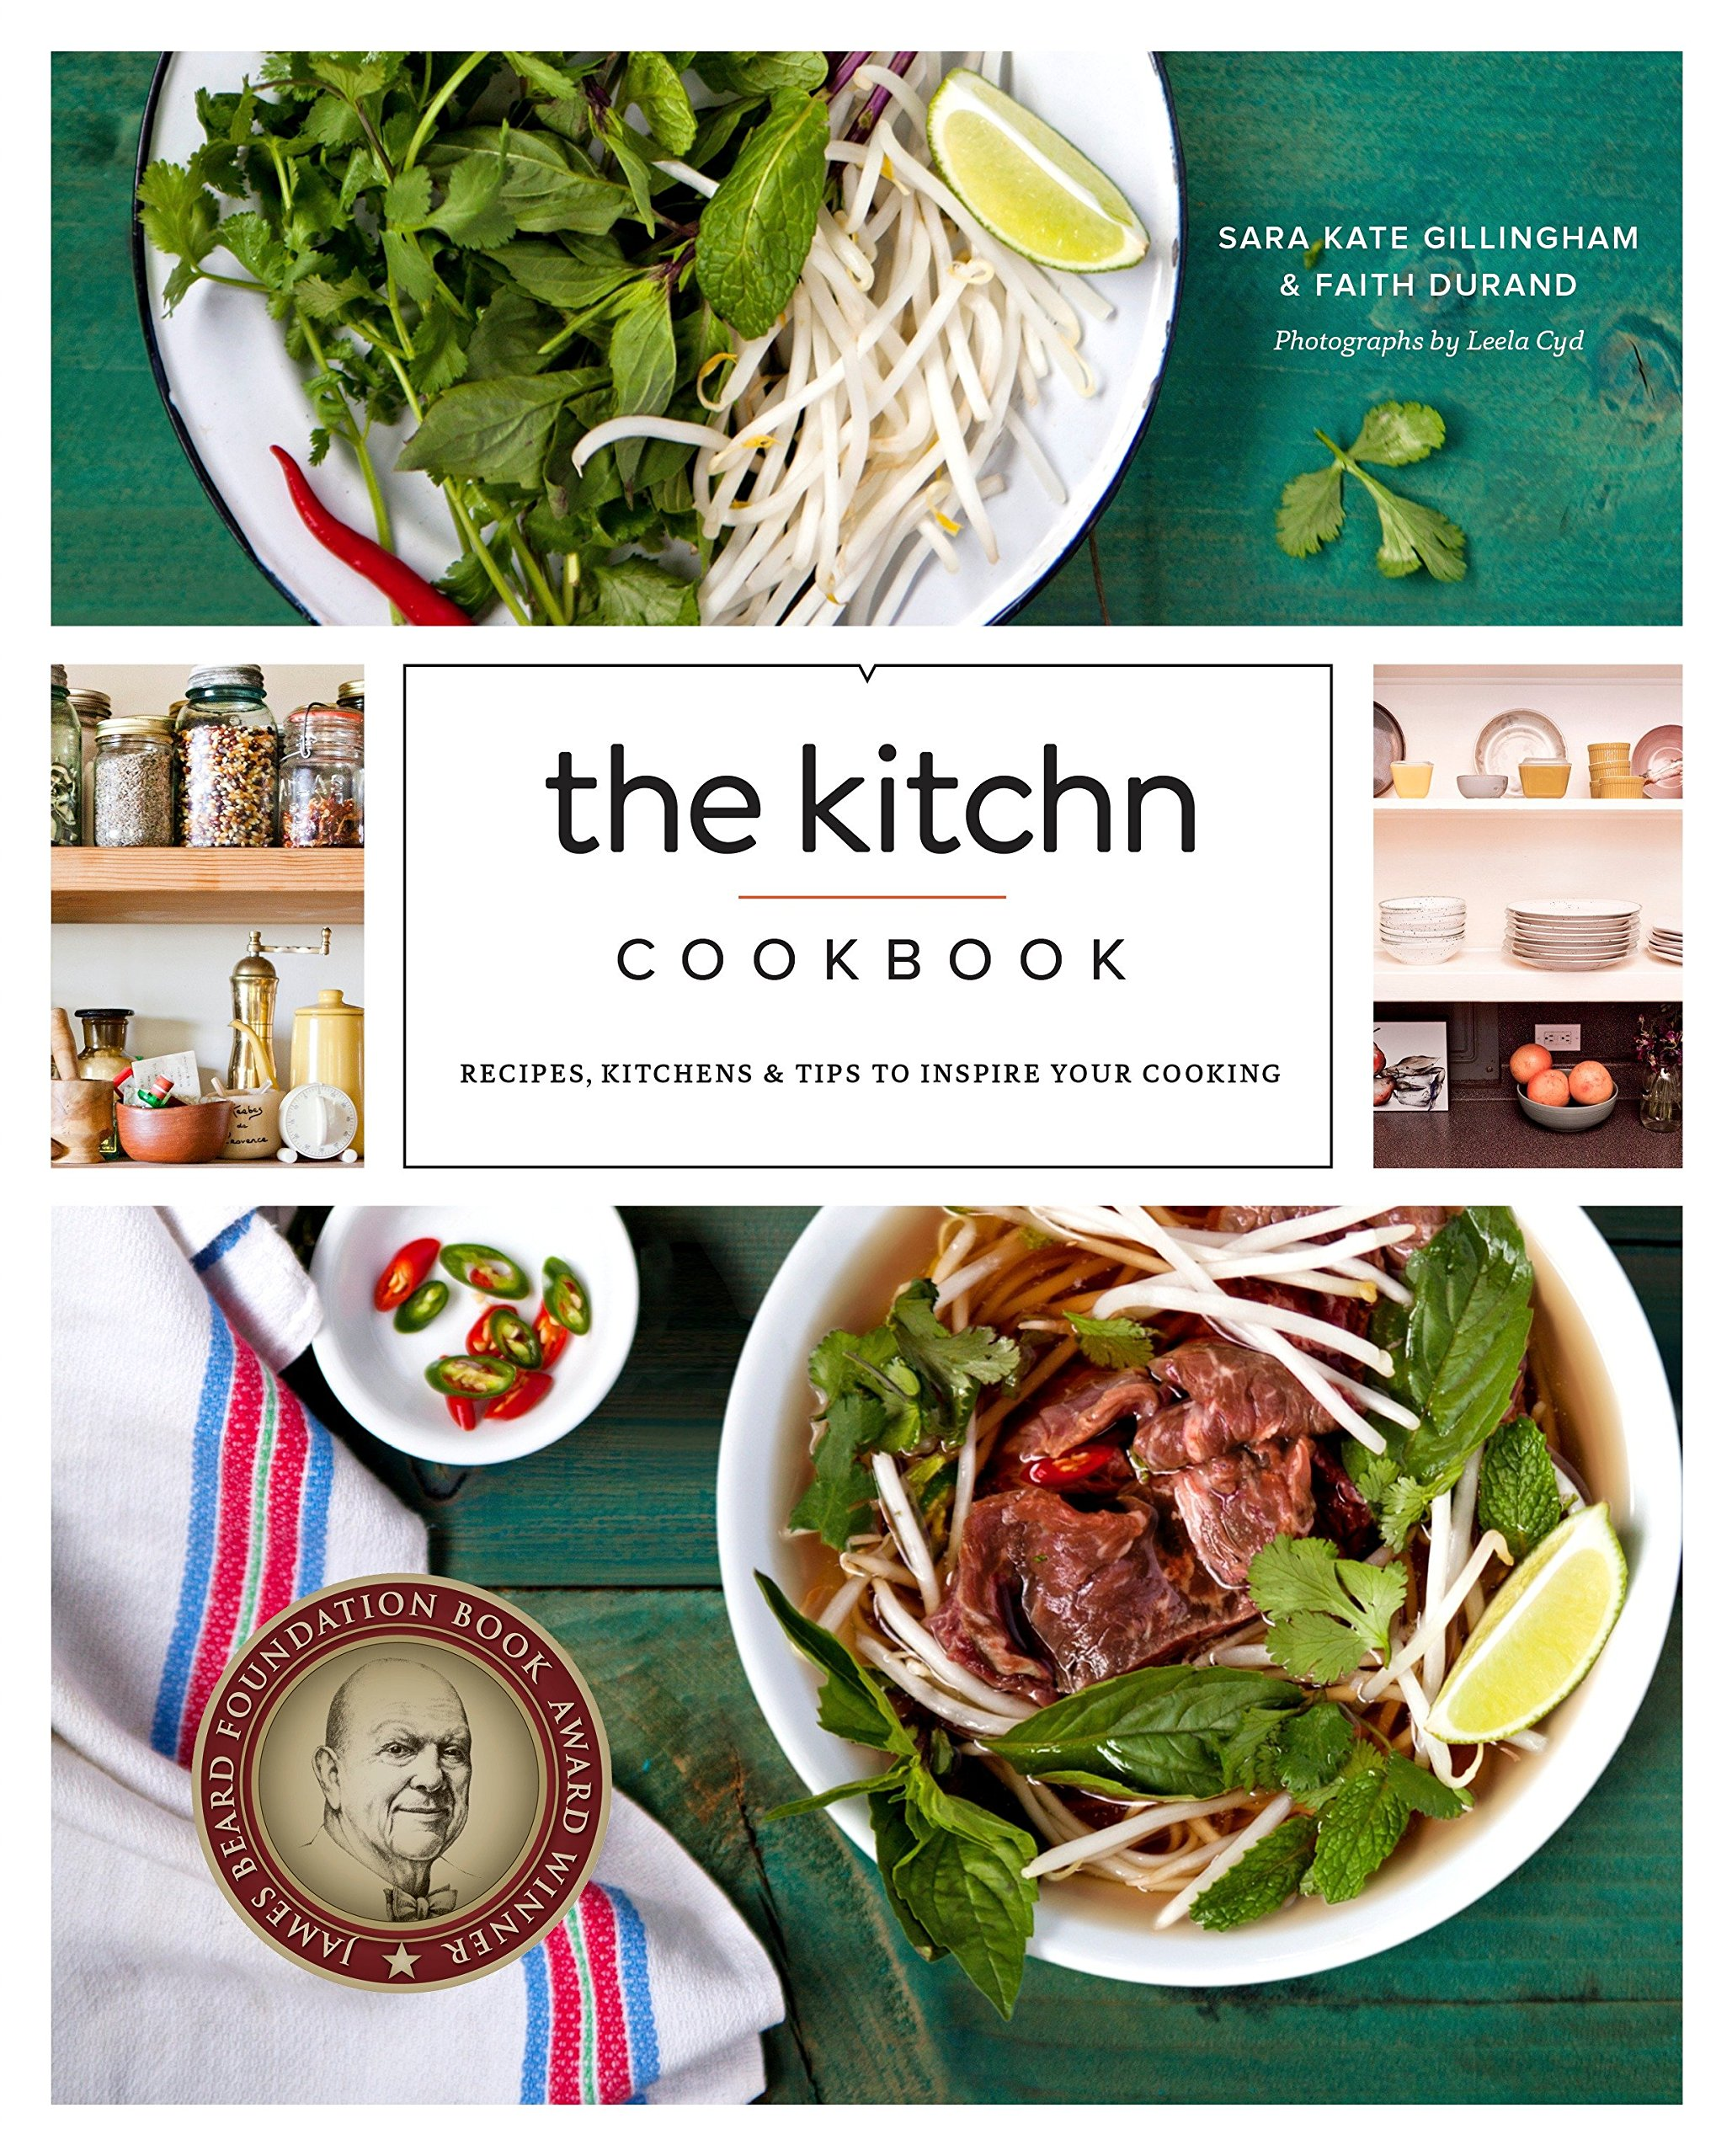 The Kitchn Cookbook: Recipes Kitchens & Tips to Inspire Your Cooking